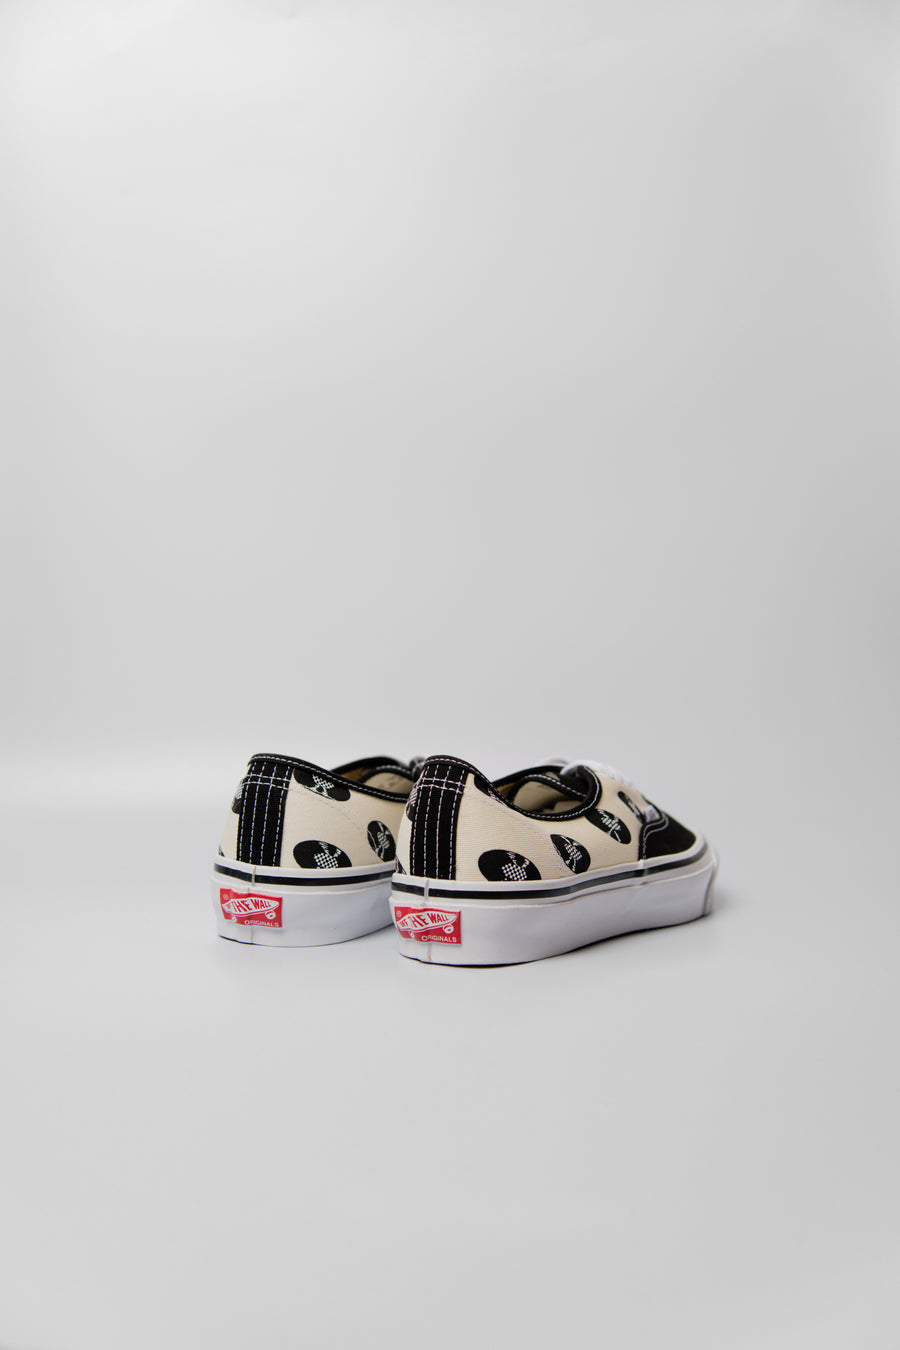 Wacko Maria OG Authentic Classic White VN0A45JK592